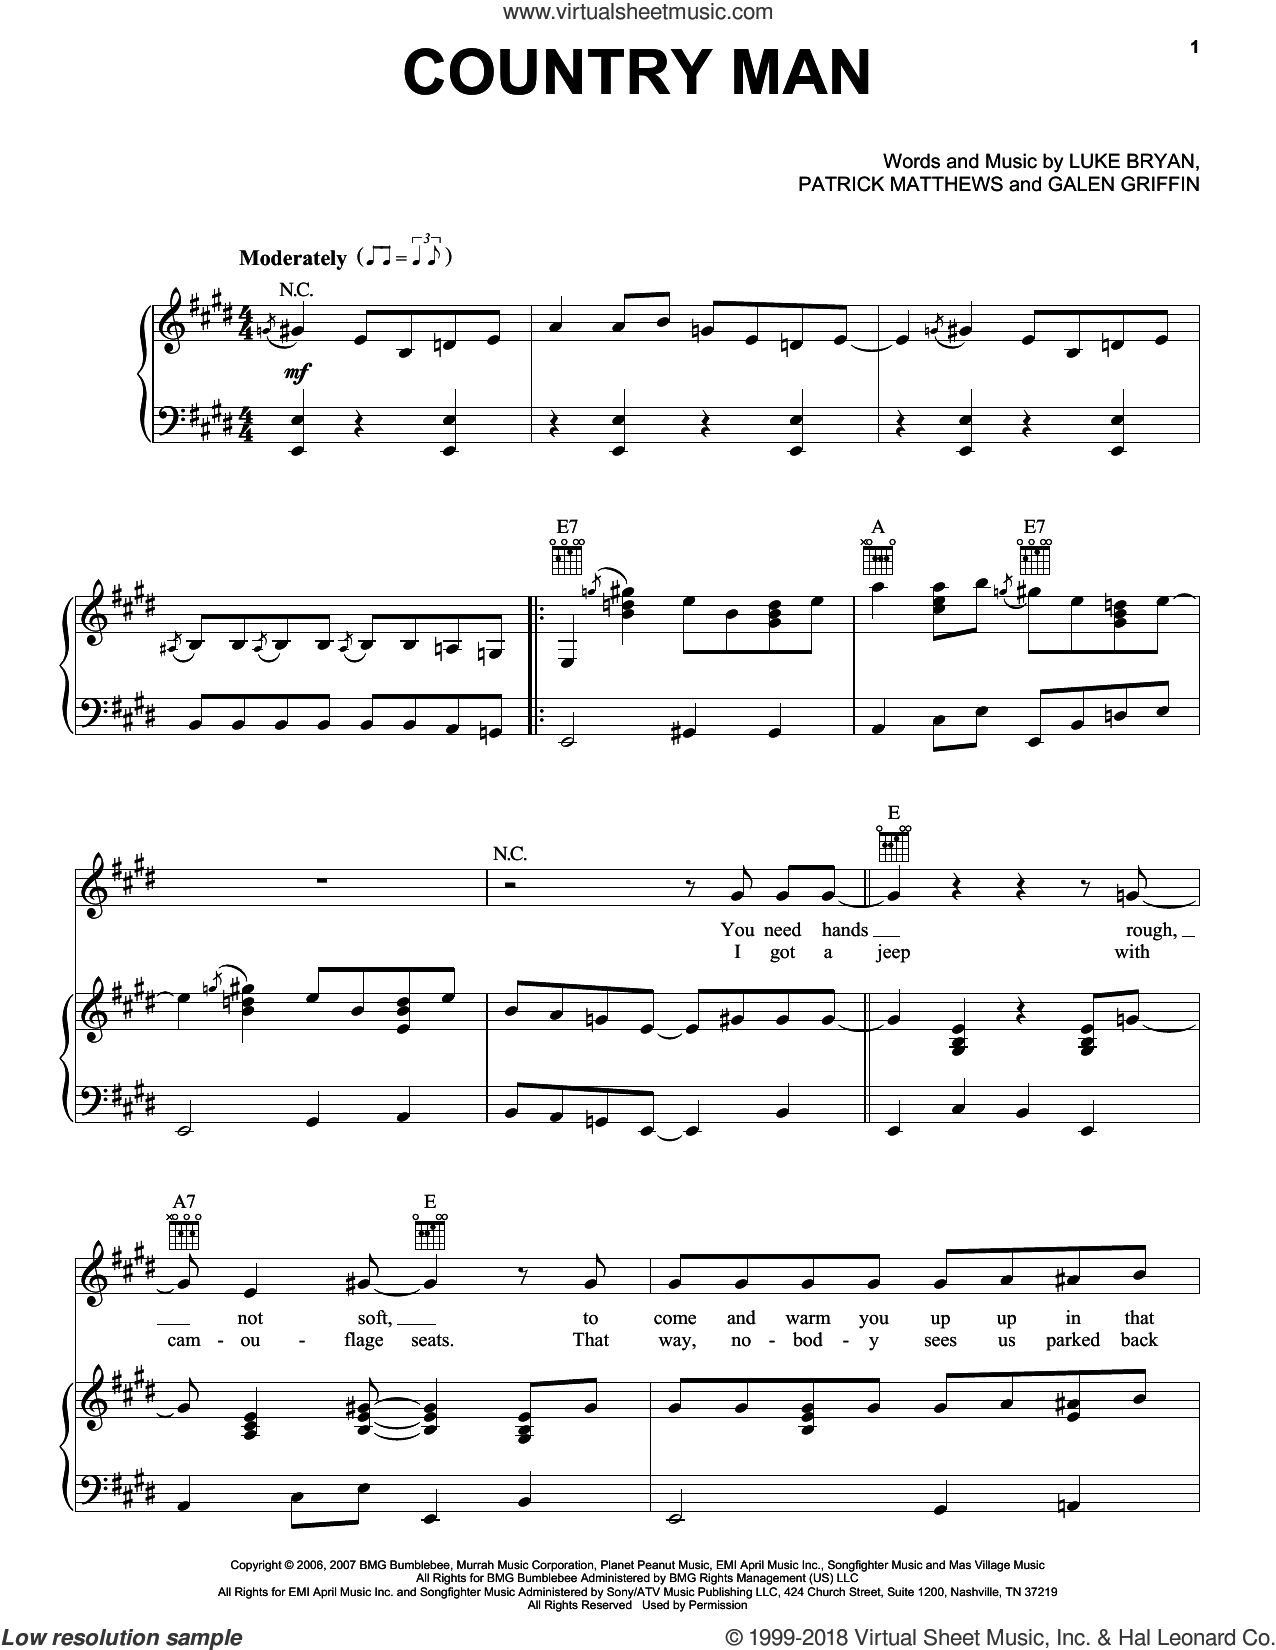 Country Man sheet music for voice, piano or guitar by Patrick Matthews and Luke Bryan